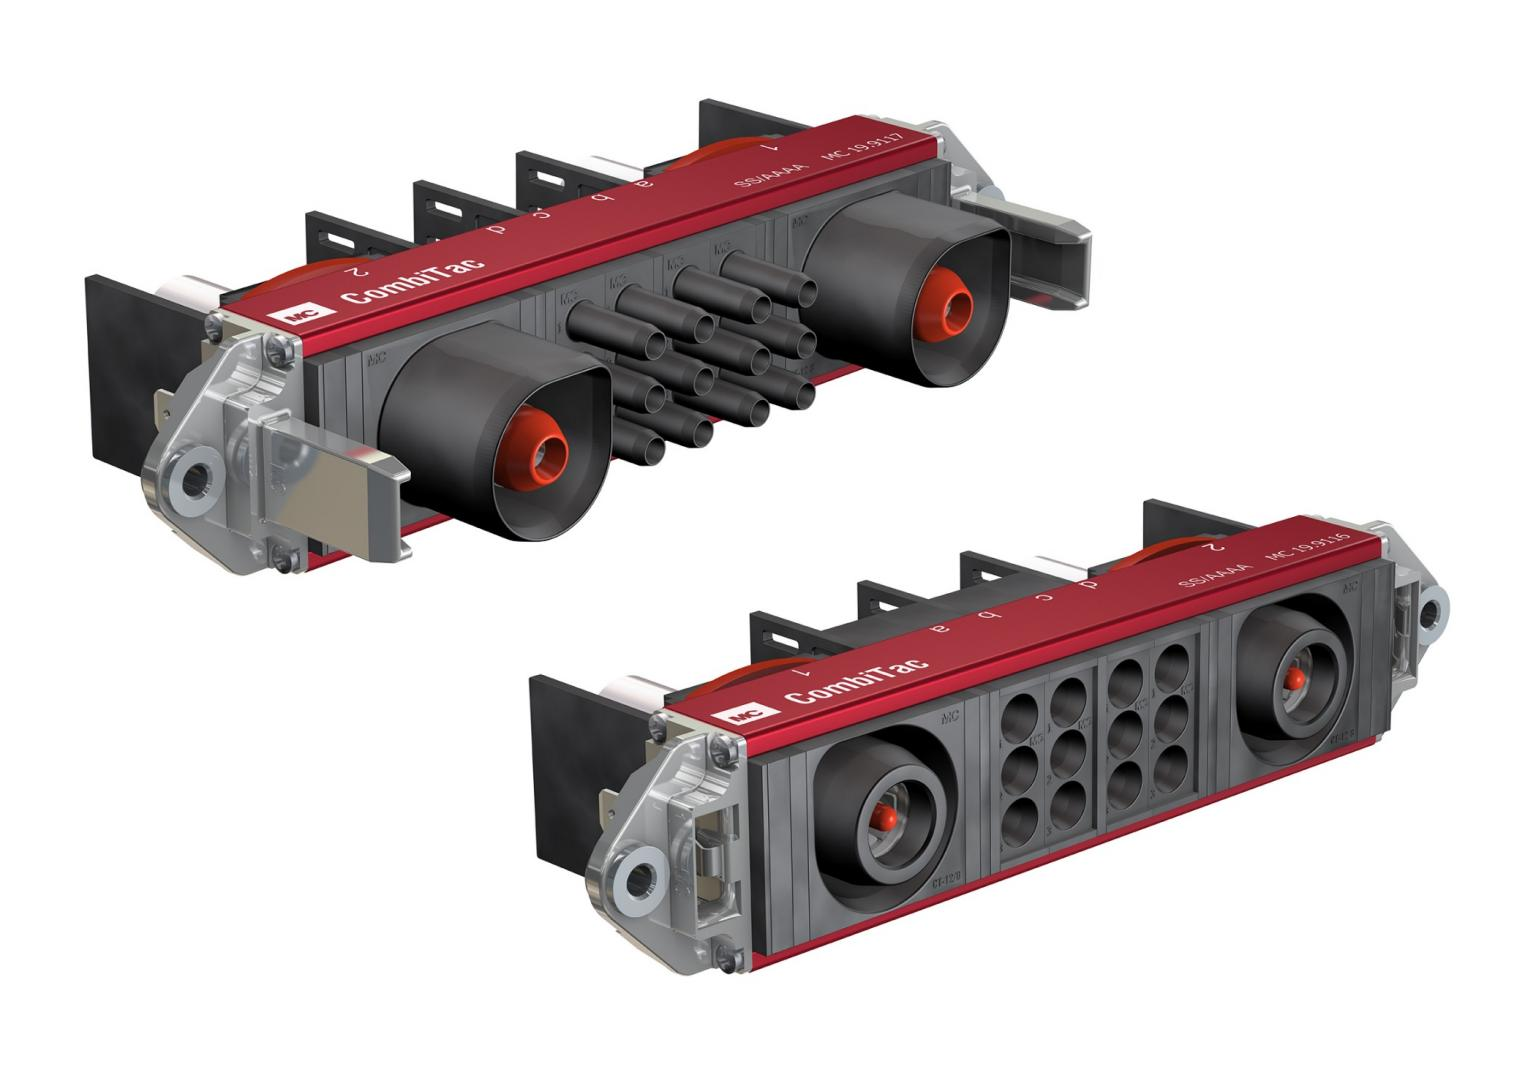 Battery packs used on rolling stock and other rail applications can now be connected using the CombiTac connector system from Multi-Contact